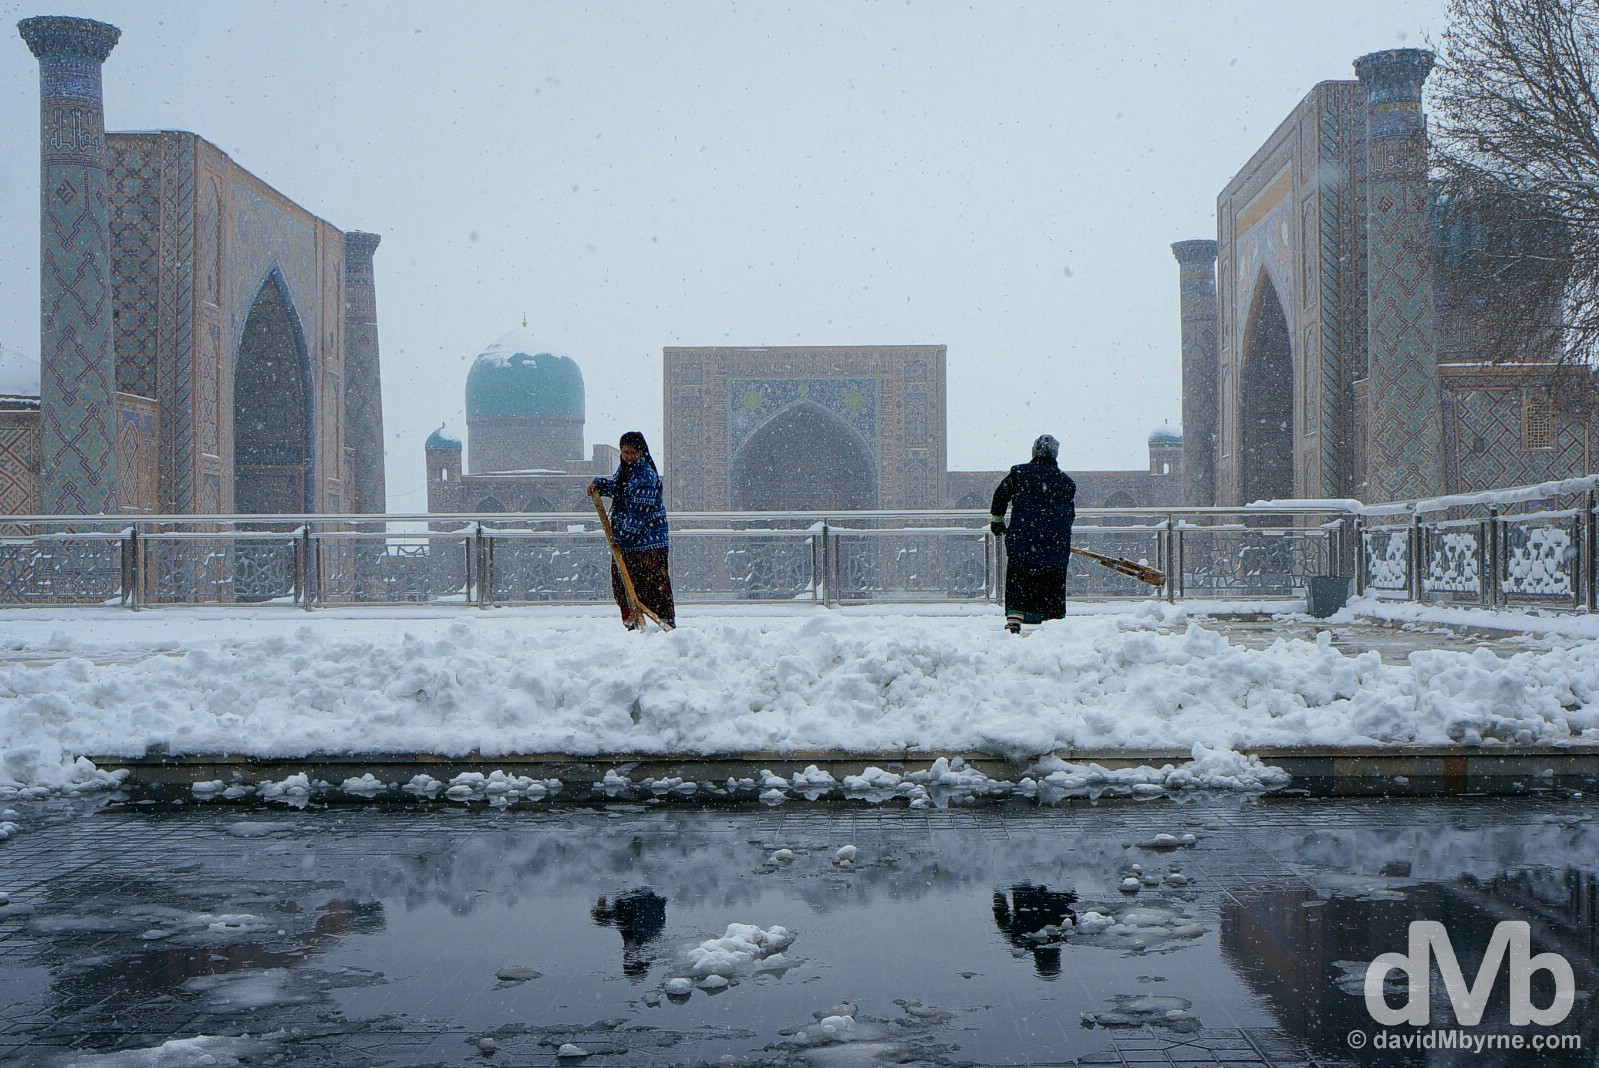 Clearing snow from the viewing platform overlooking the Registan in Samarkand, Uzbekistan. March 10, 2015.